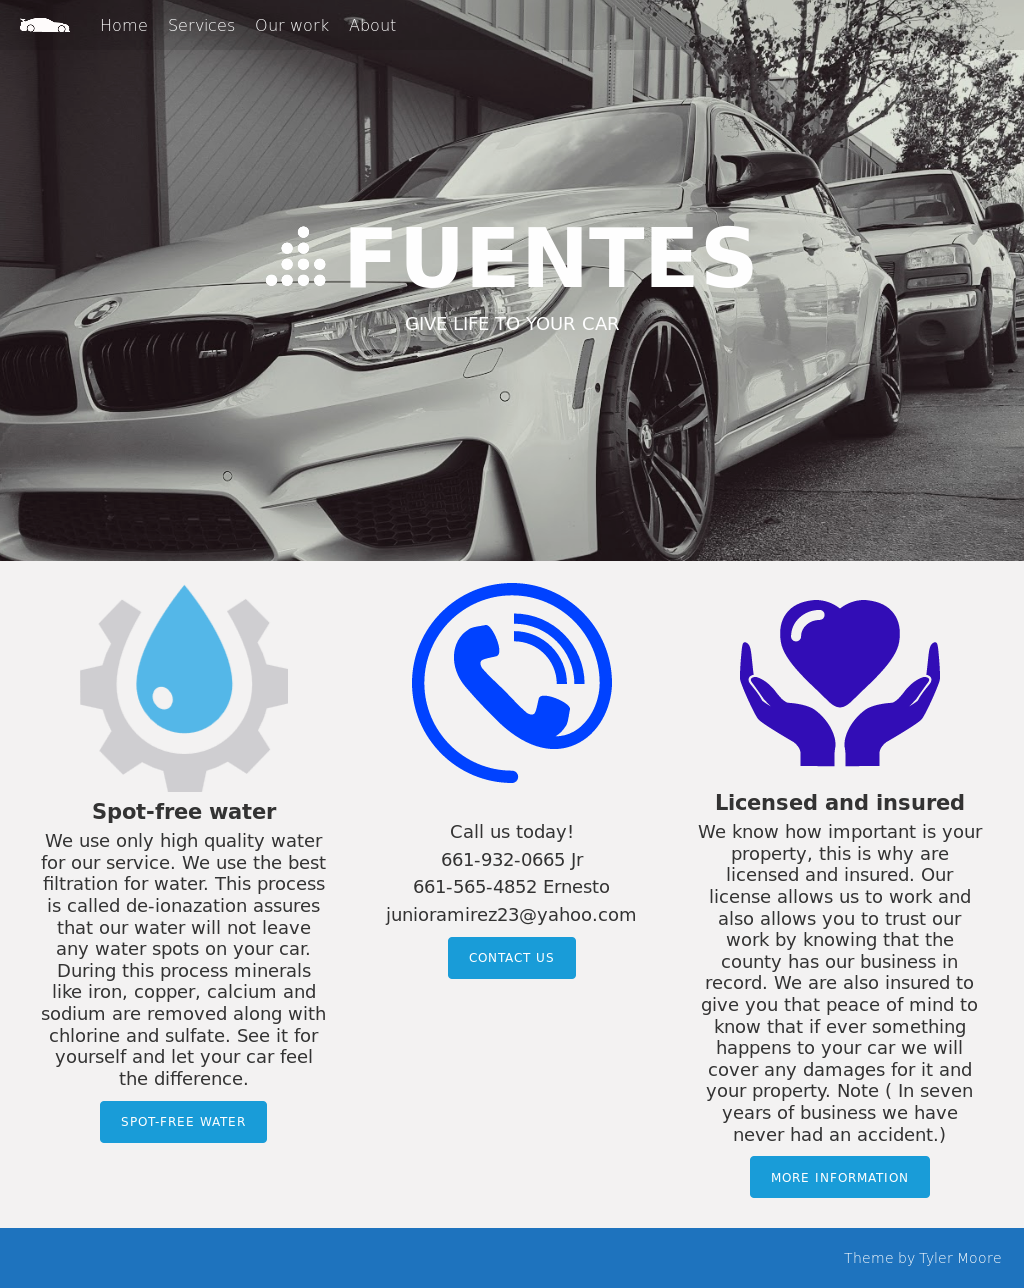 Fuentes mobile car wash and detailing competitors revenue and fuentes mobile car wash and detailing website history solutioingenieria Images